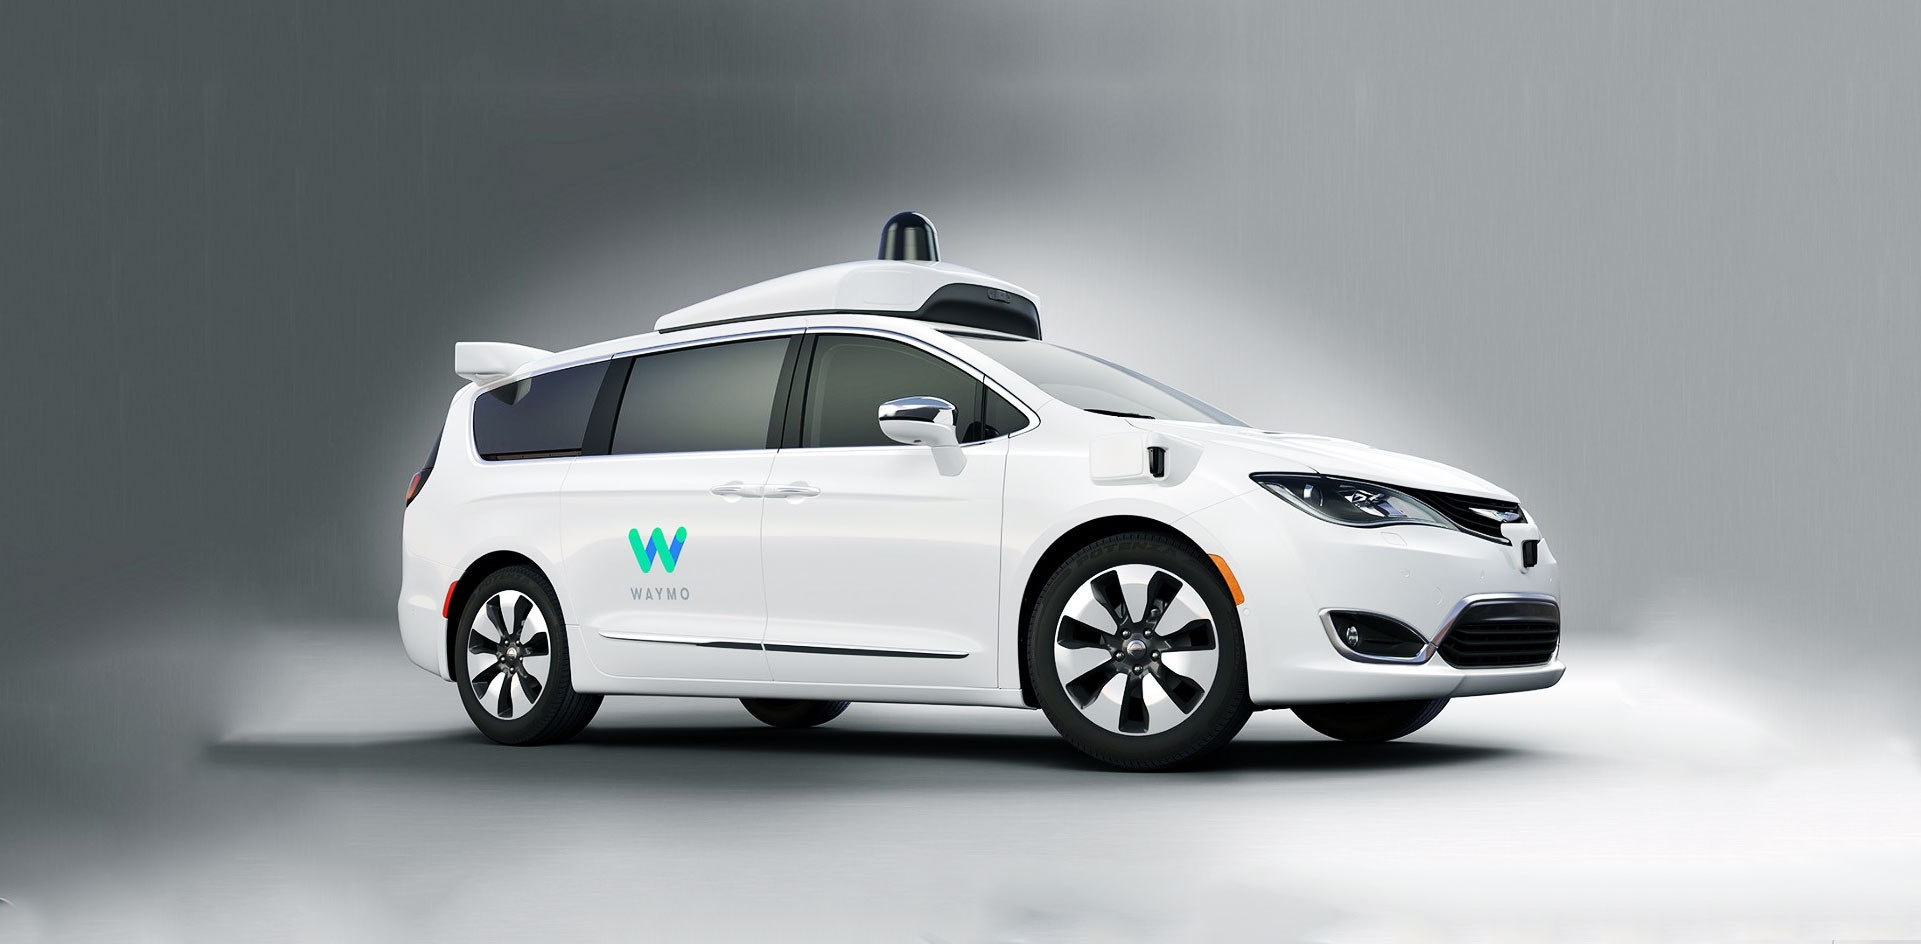 Waymo drops 'self-driving' from its name, opts for 'autonomous driving'